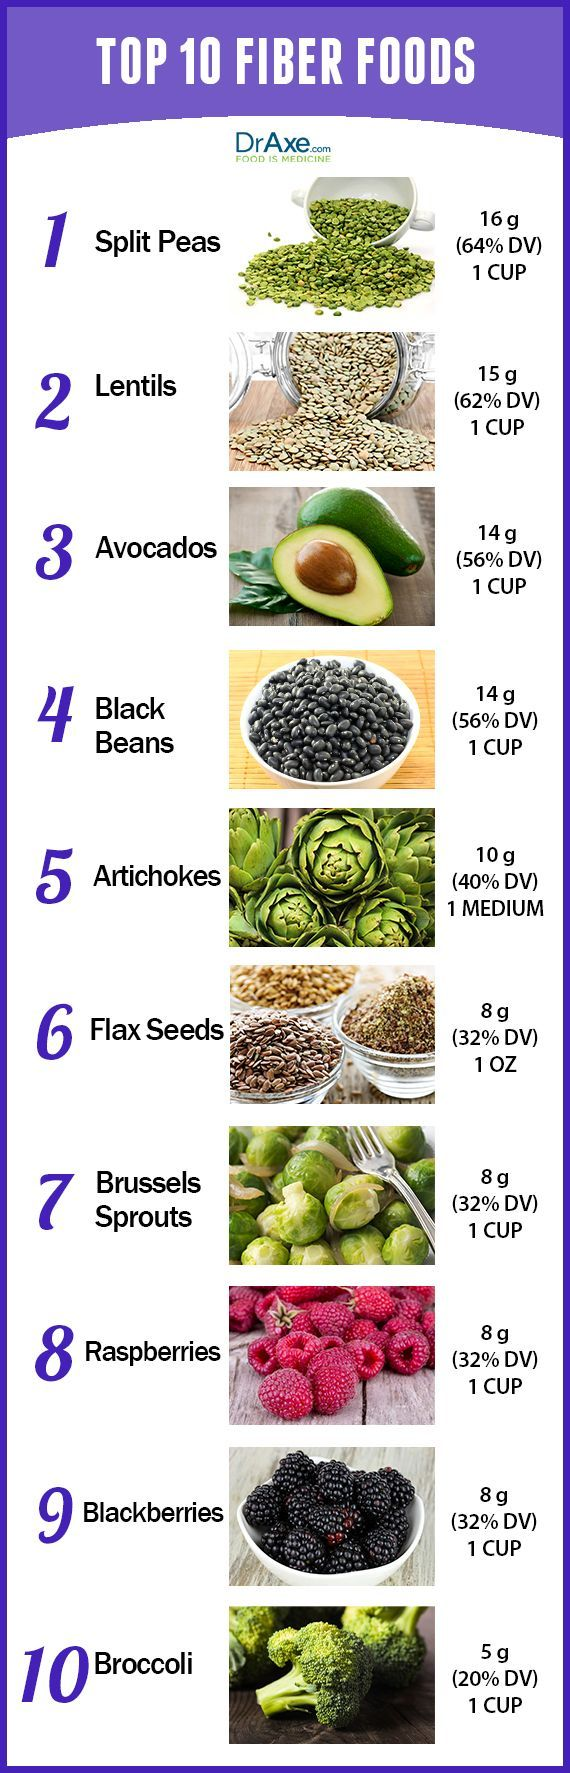 Top 10 High Fiber Foods Fiber is great for digestive health, weight loss, and heart health. Are you consuming enough fiber-rich foods? Try and consume 2-3 servings from this high fiber foods list and around 30-40g of fiber per day.